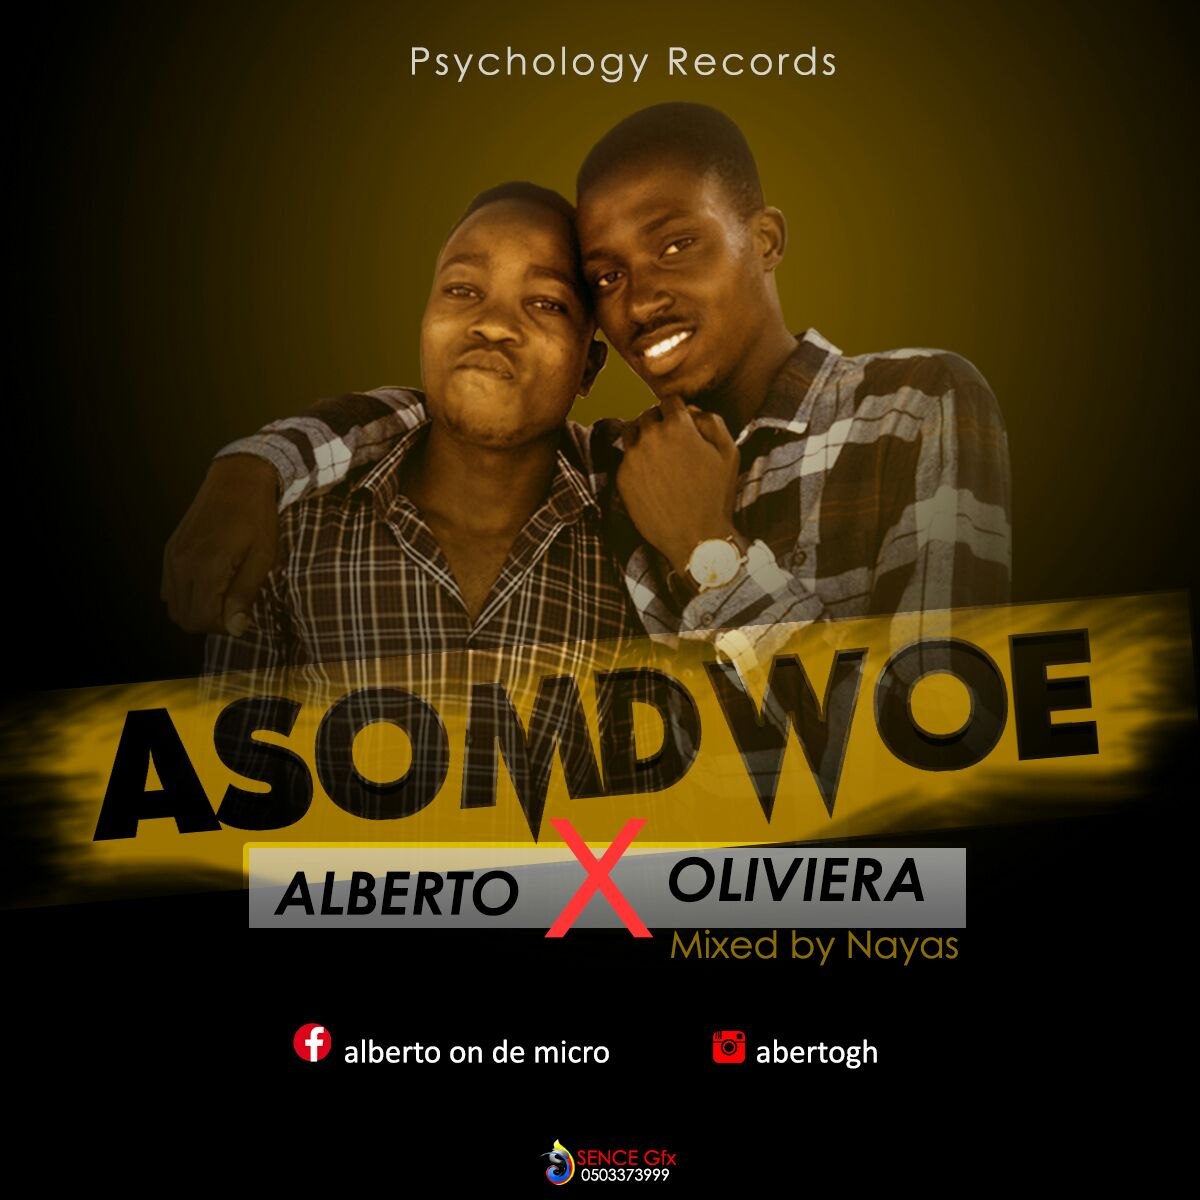 ALBERTO FT OLIVIERA -ASOMDWOE (MIXED BY NAYAS)